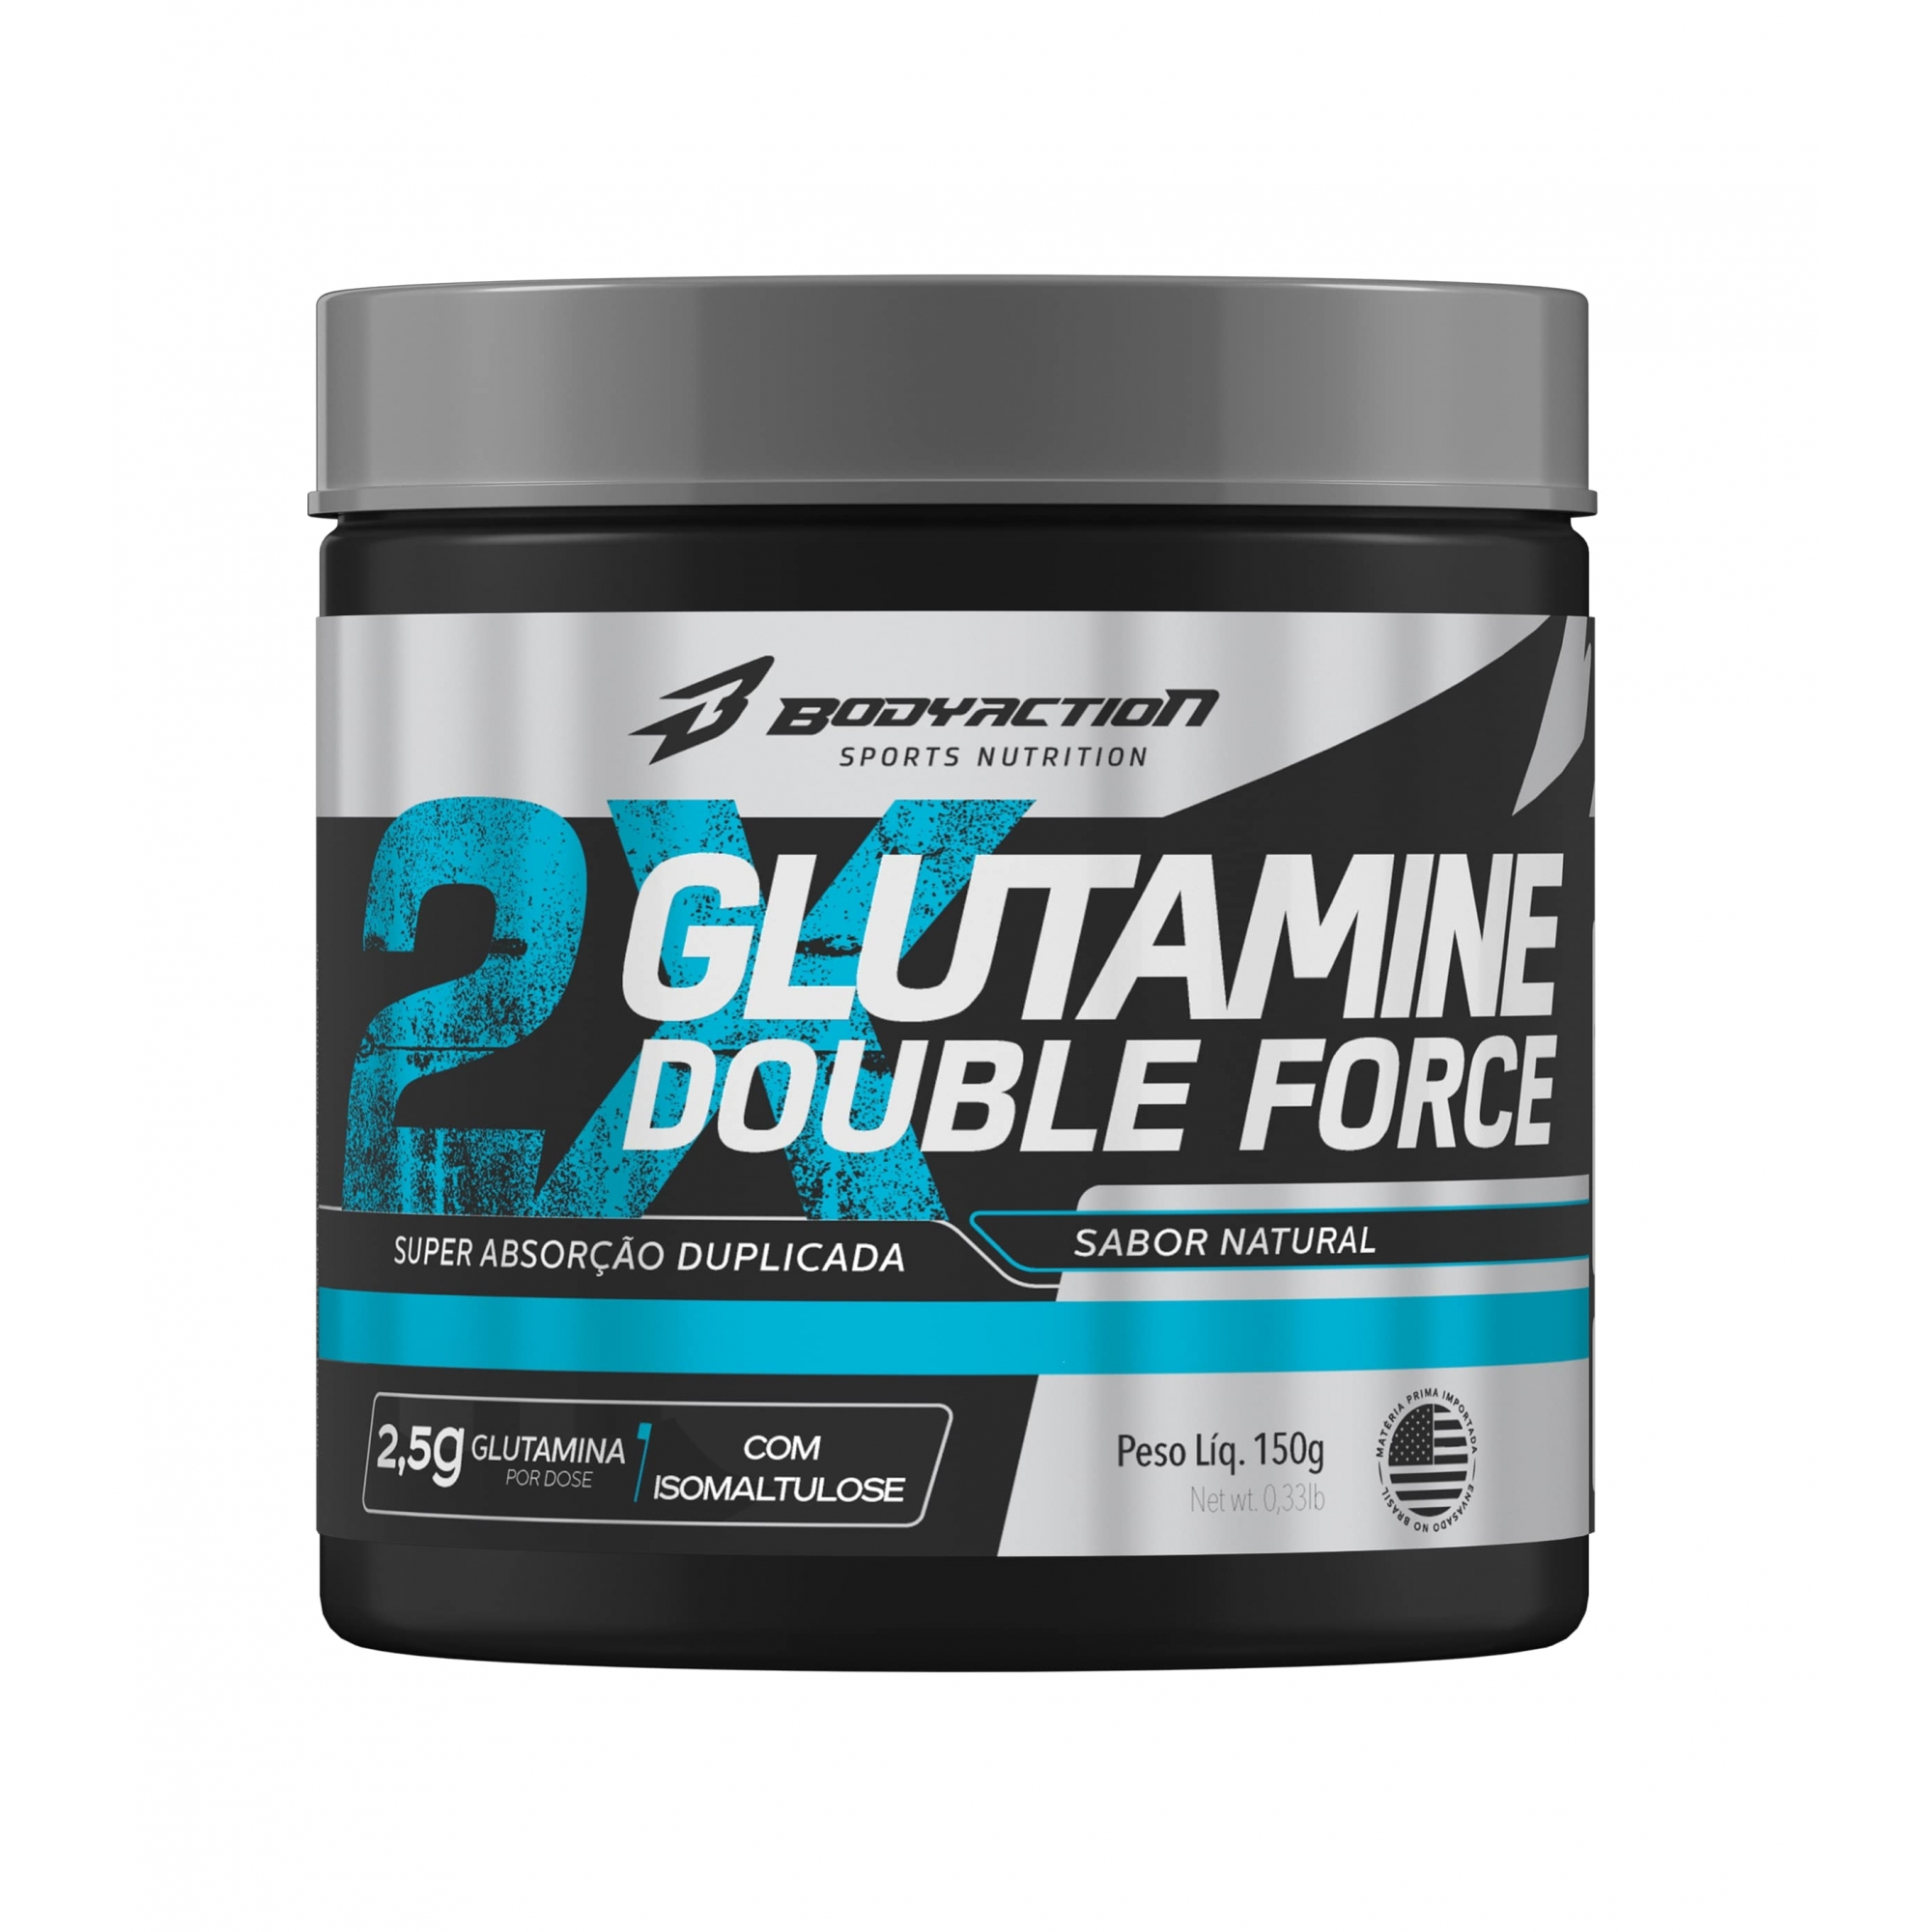 GLUTAMINE DOUBLE FORCE